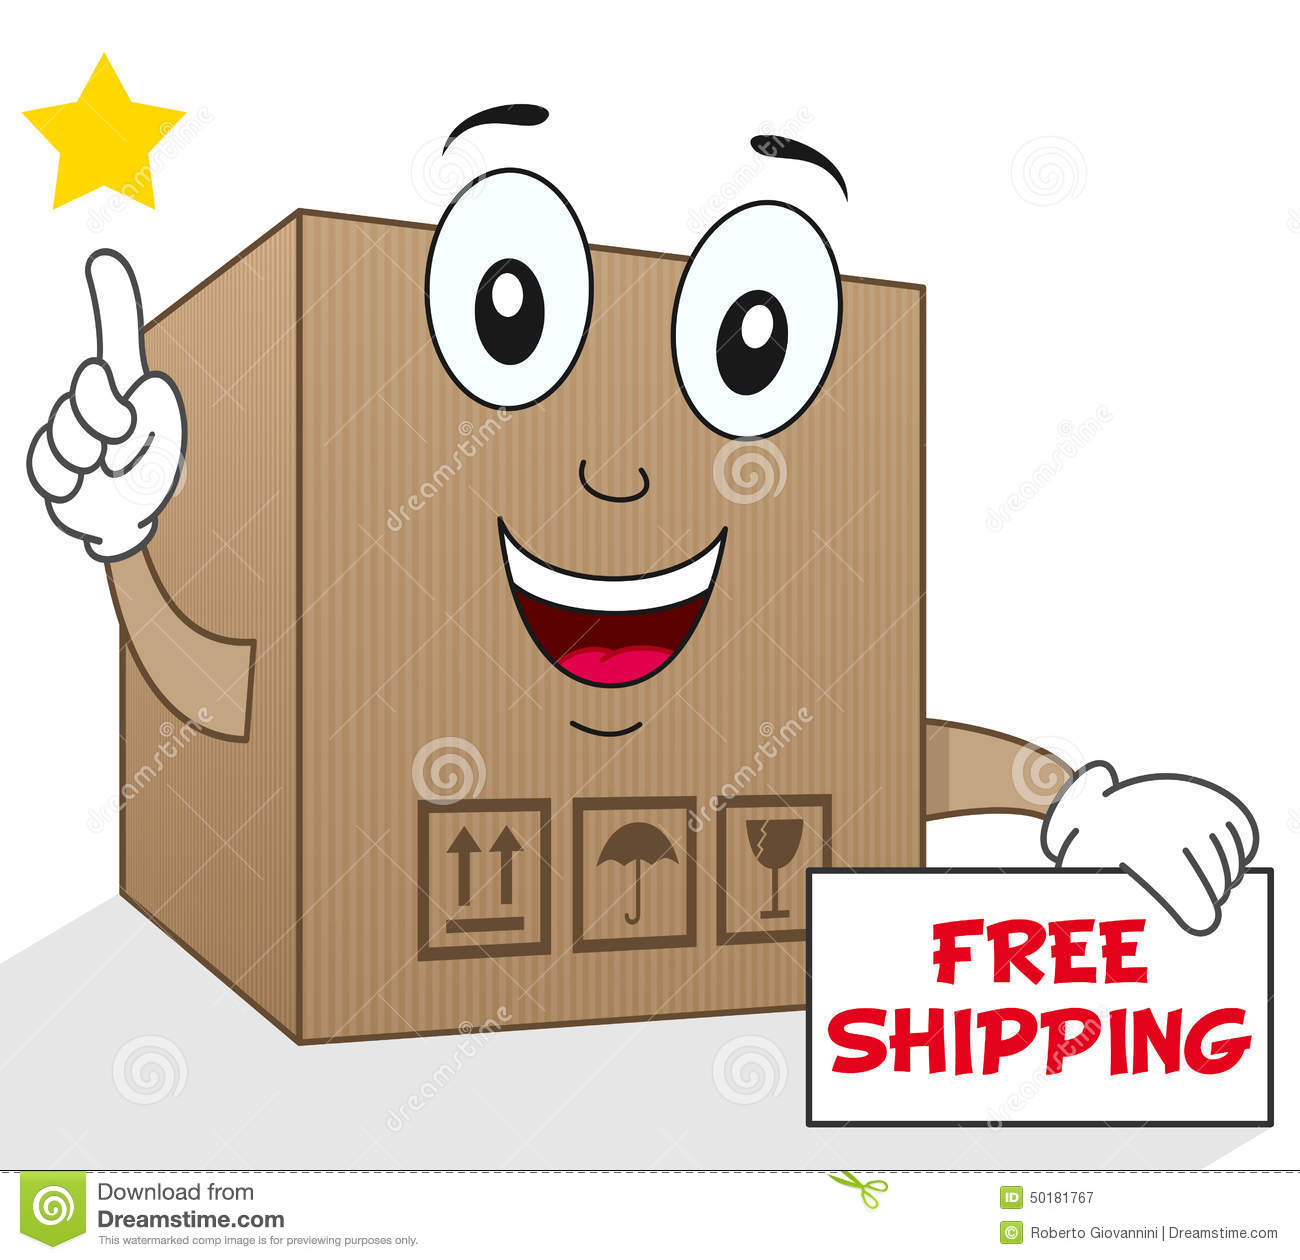 Shipping Delivery: Shipment Cardboard Box Free Shipping Stock Vector